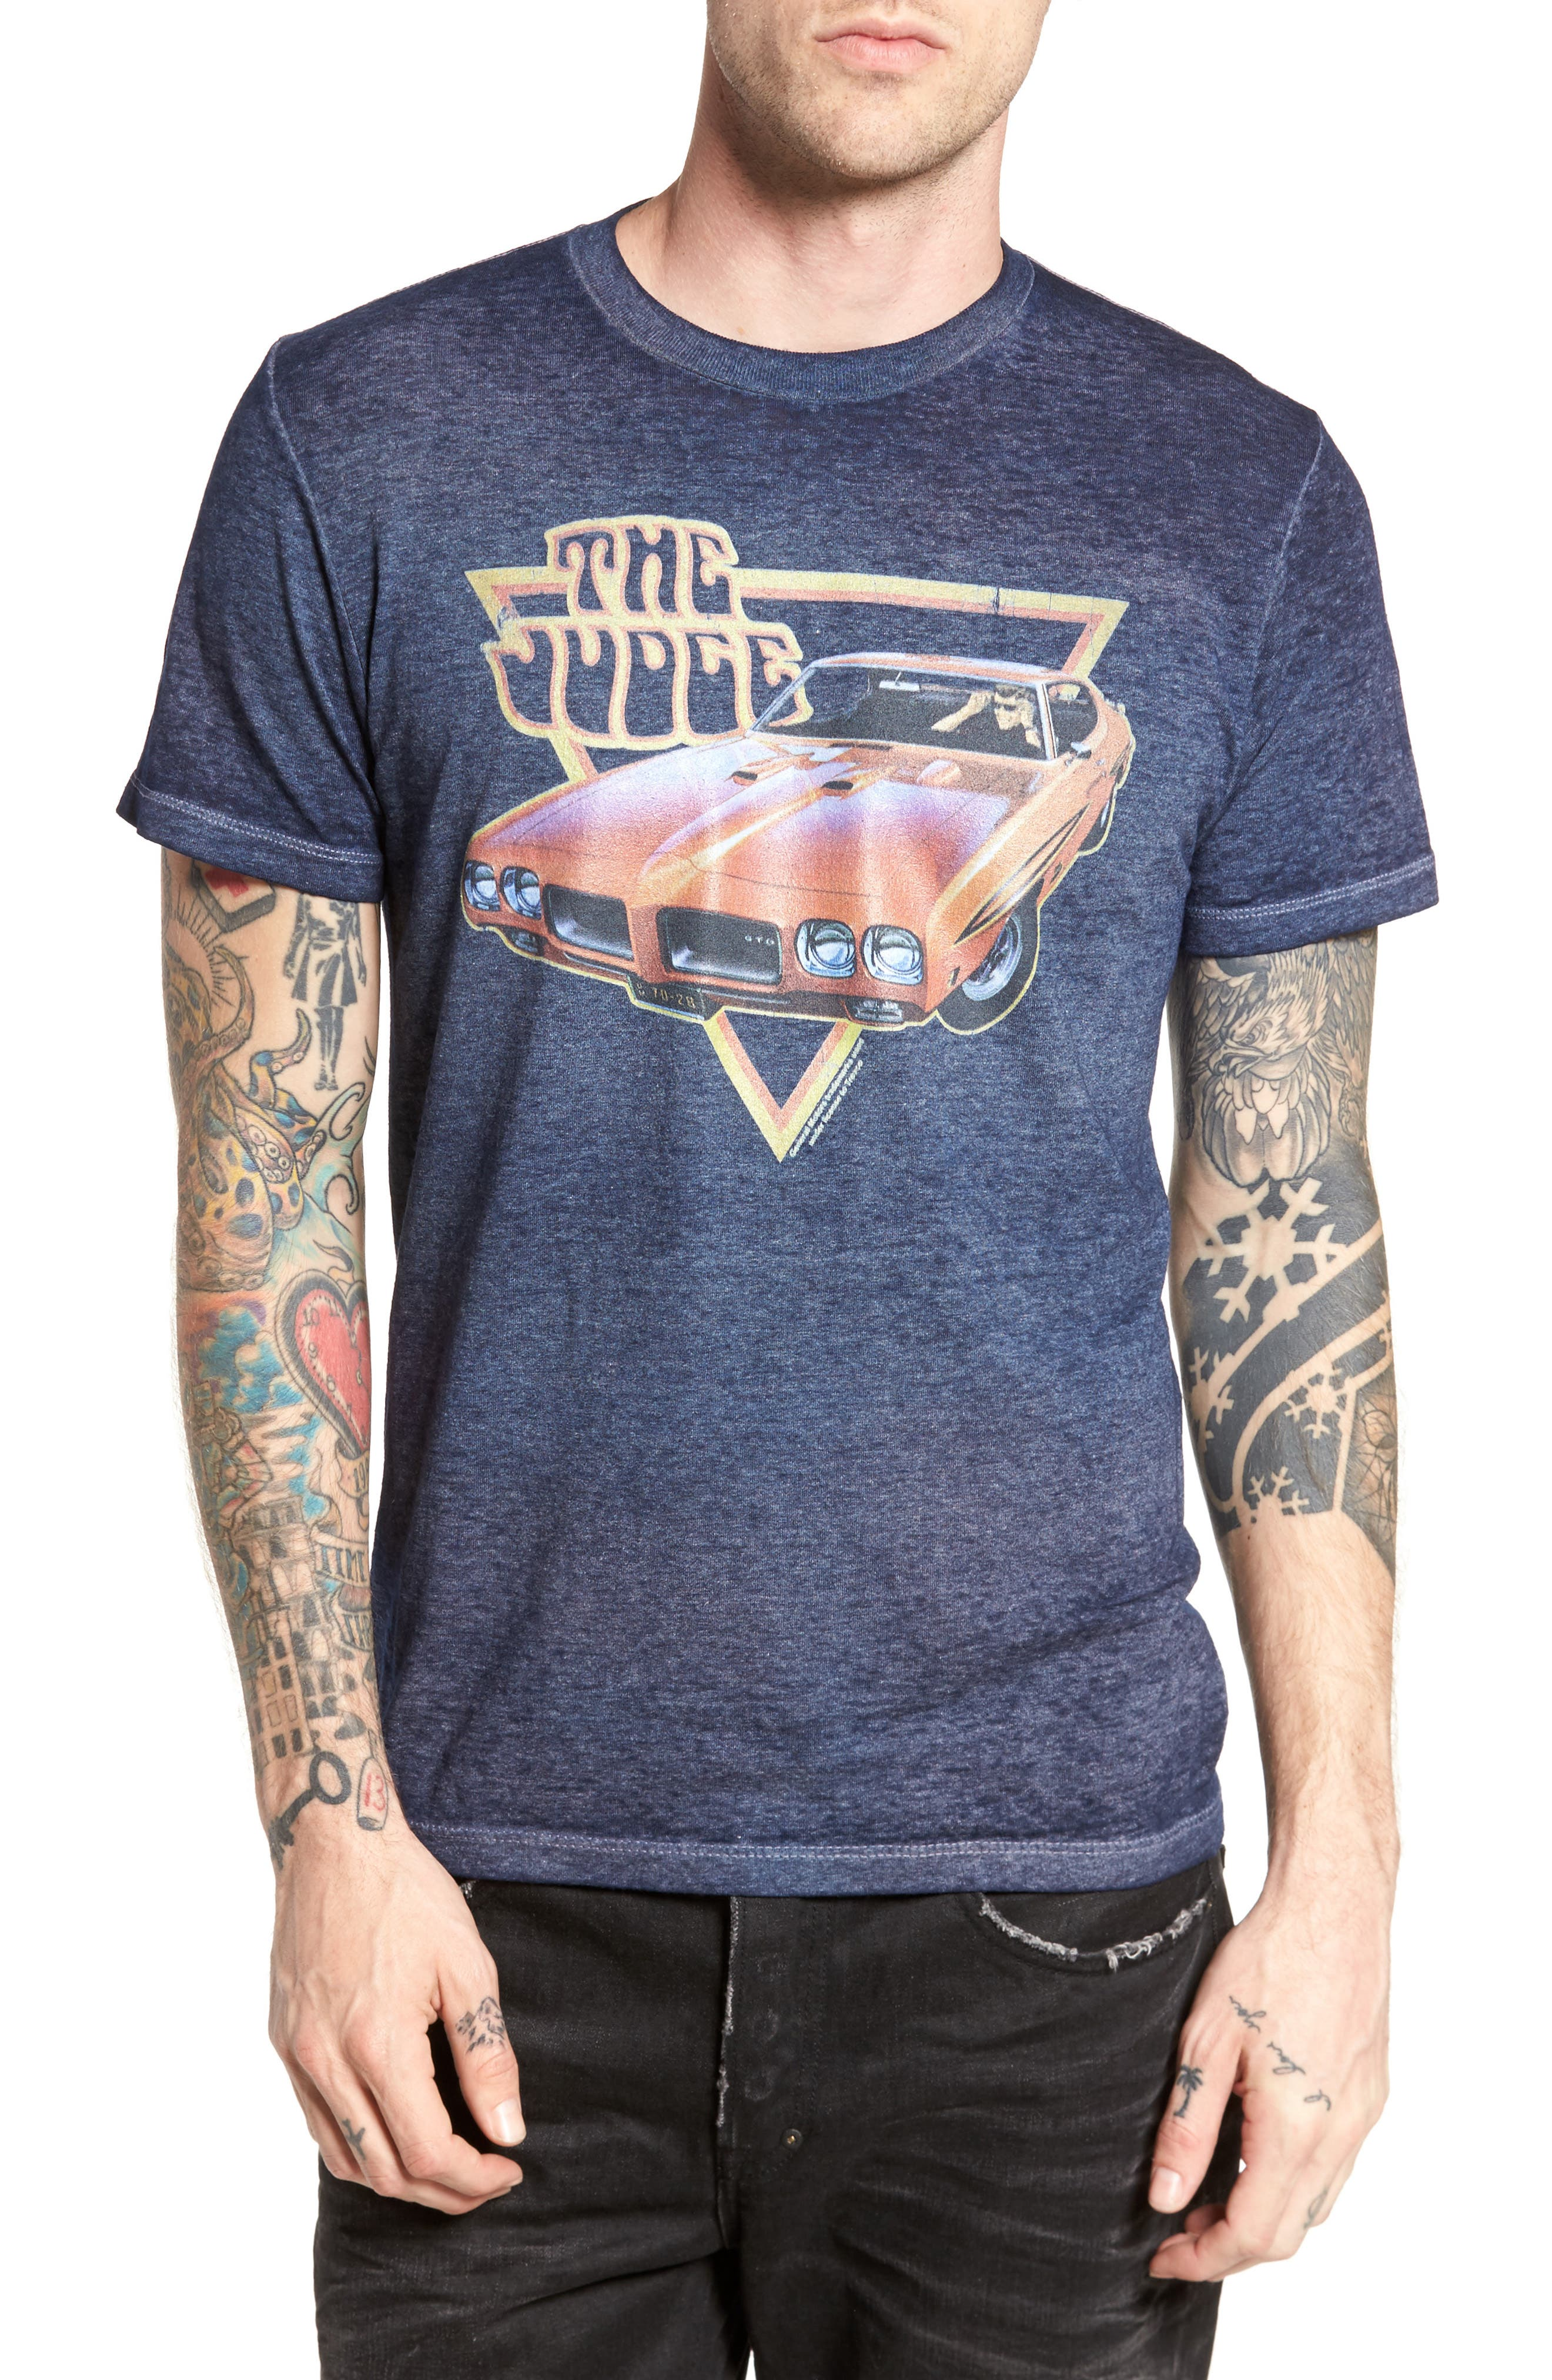 The Rail The Judge Graphic T-Shirt